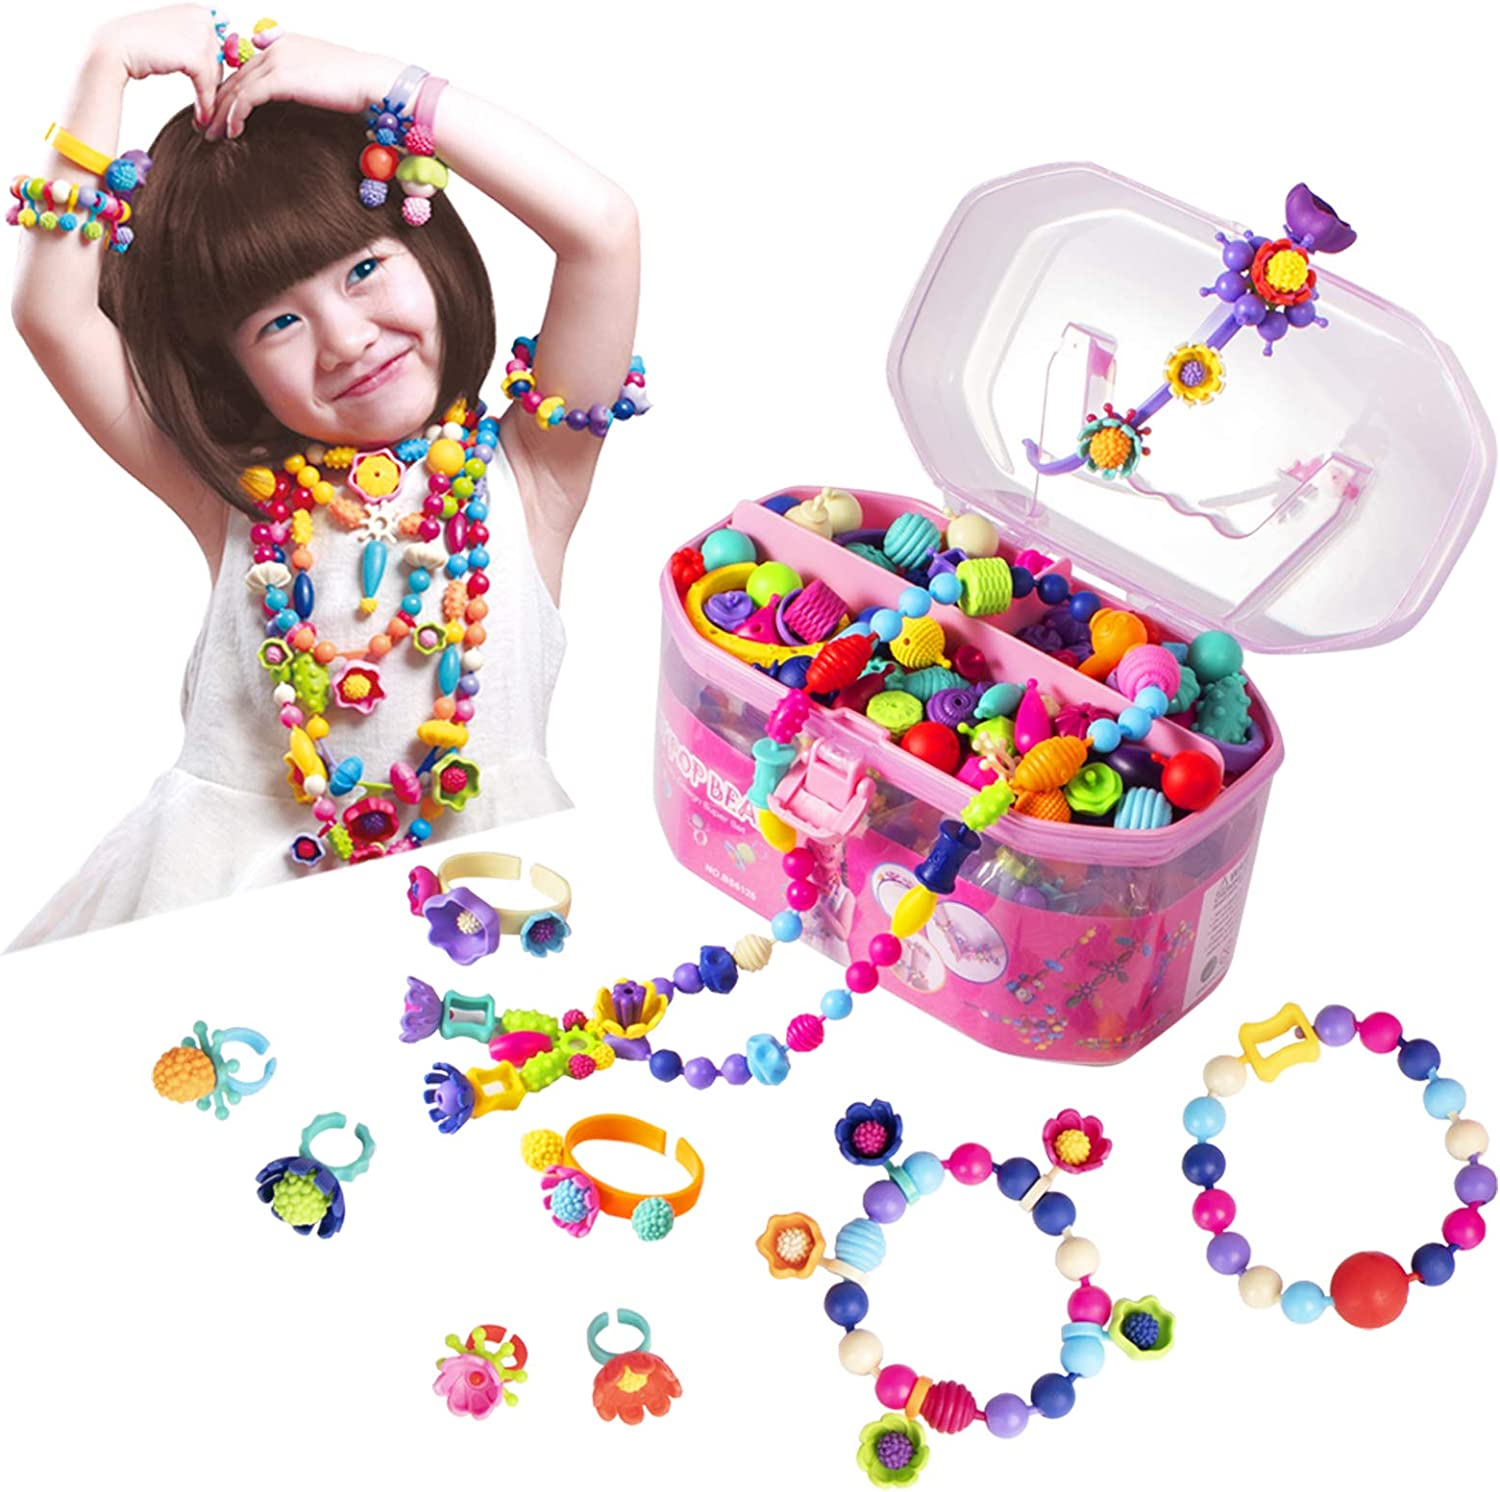 Pop Beads latest Jewelry Making Kit - Arts for Age 2021new shipping free 3 and Girls Crafts